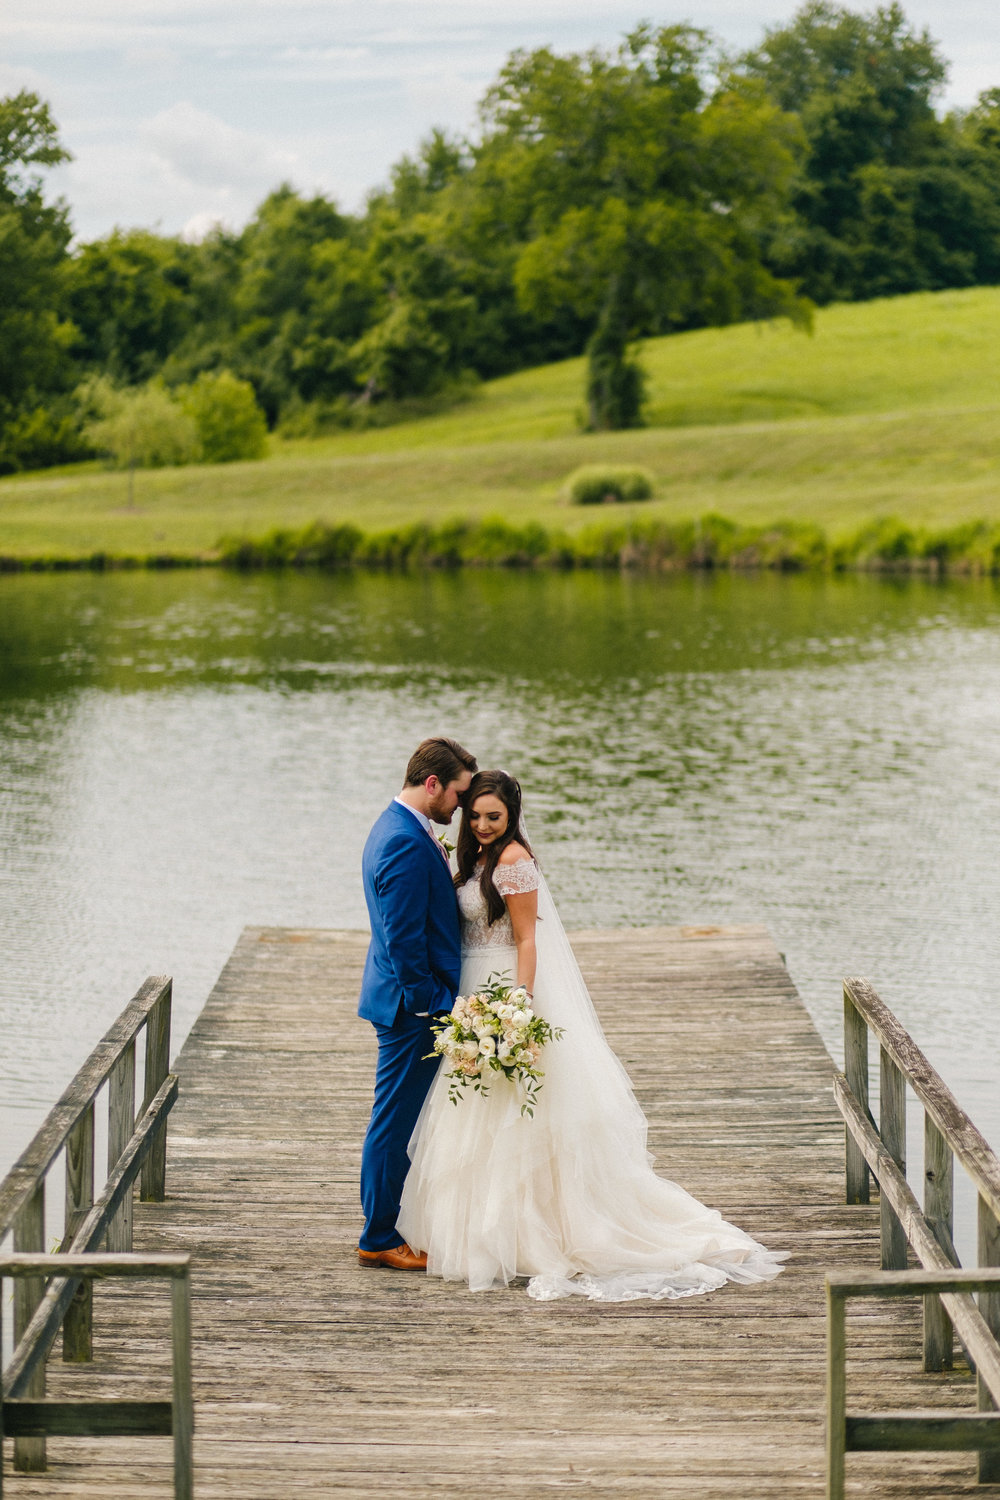 Nashville_Wedding_Photography_Mint_Springs_42.jpg